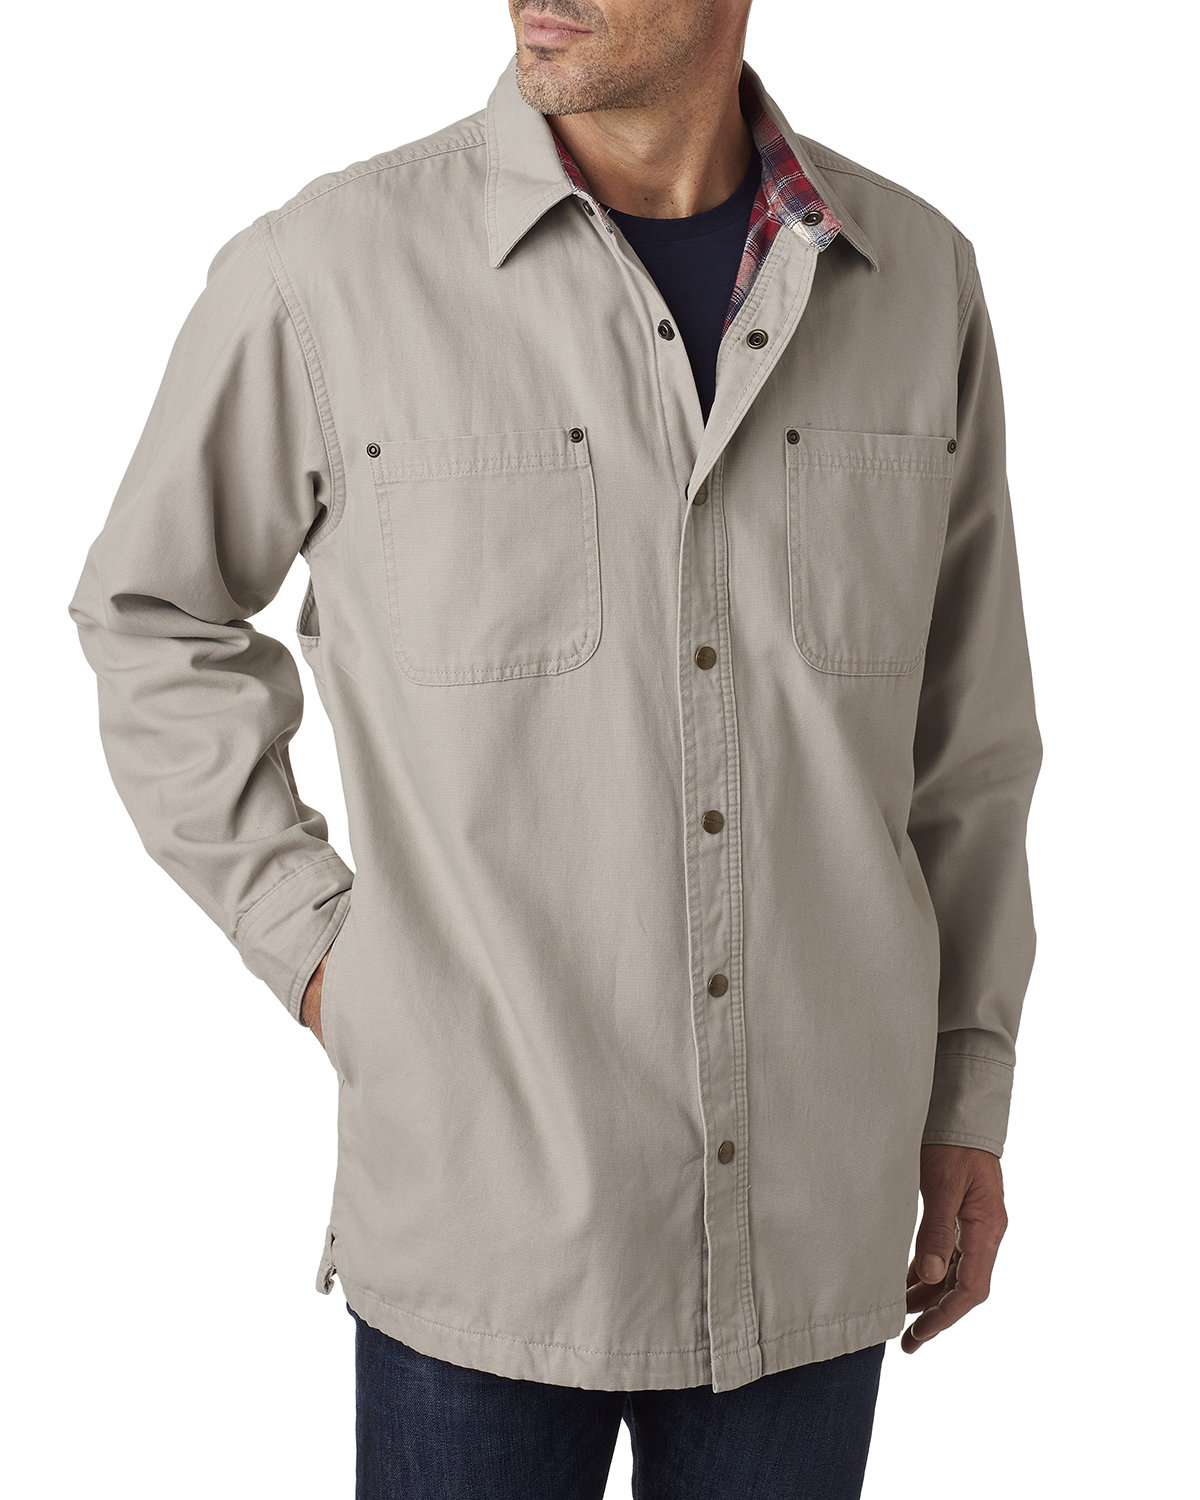 Backpacker Men's Tall Canvas Shirt Jacket with Flannel Lining STONE